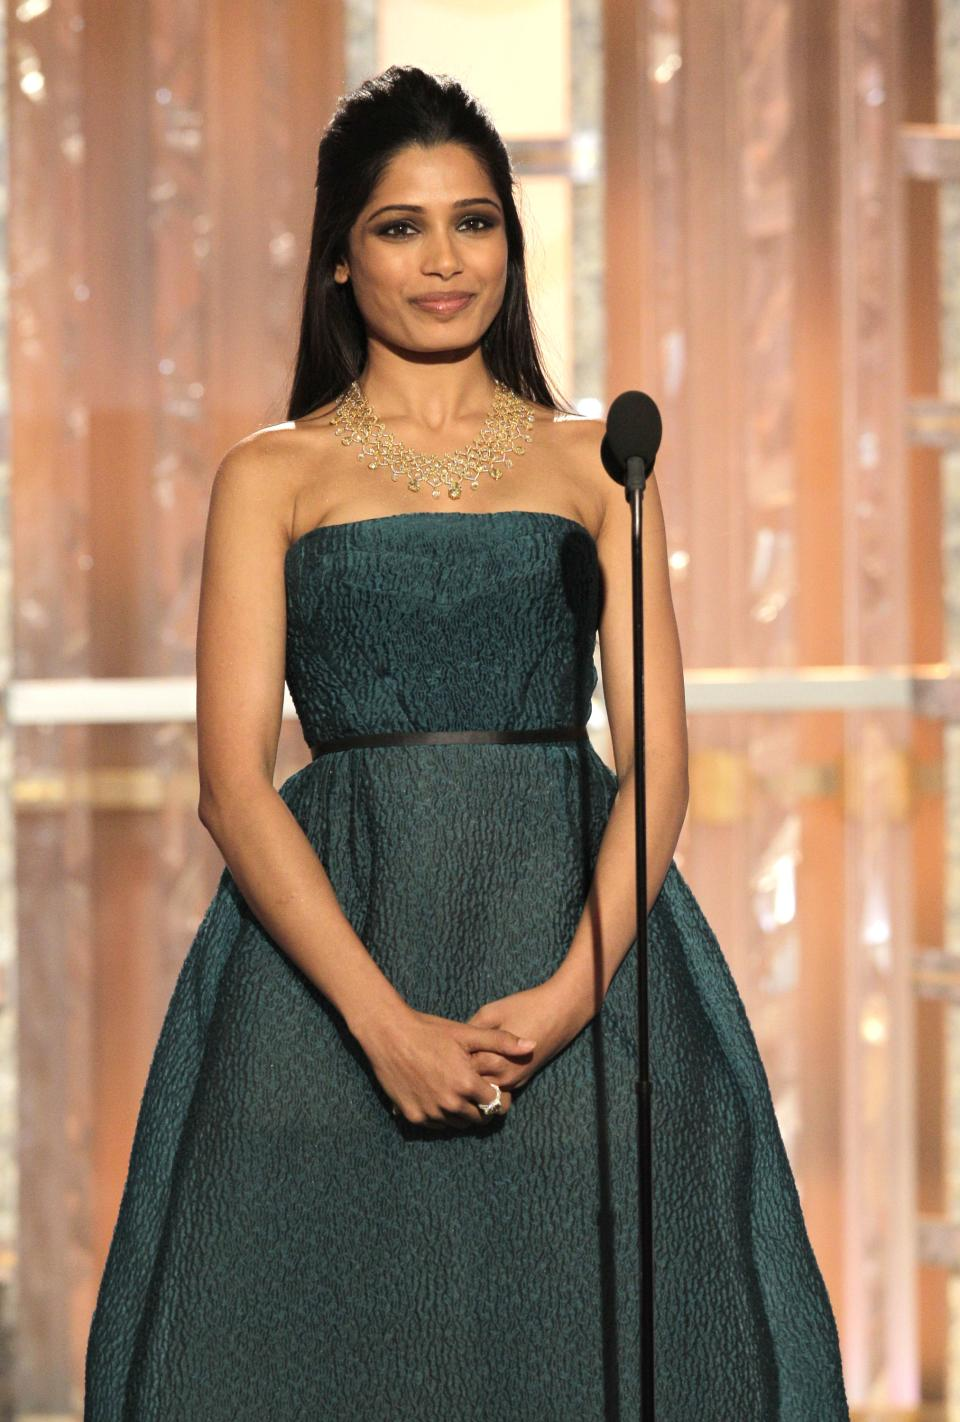 In this image released by NBC, presenter Freida Pinto appears during the 69th Annual Golden Globe Awards, Sunday, Jan. 15, 2012 in Los Angeles. (AP Photo/NBC, Paul Drinkwater)